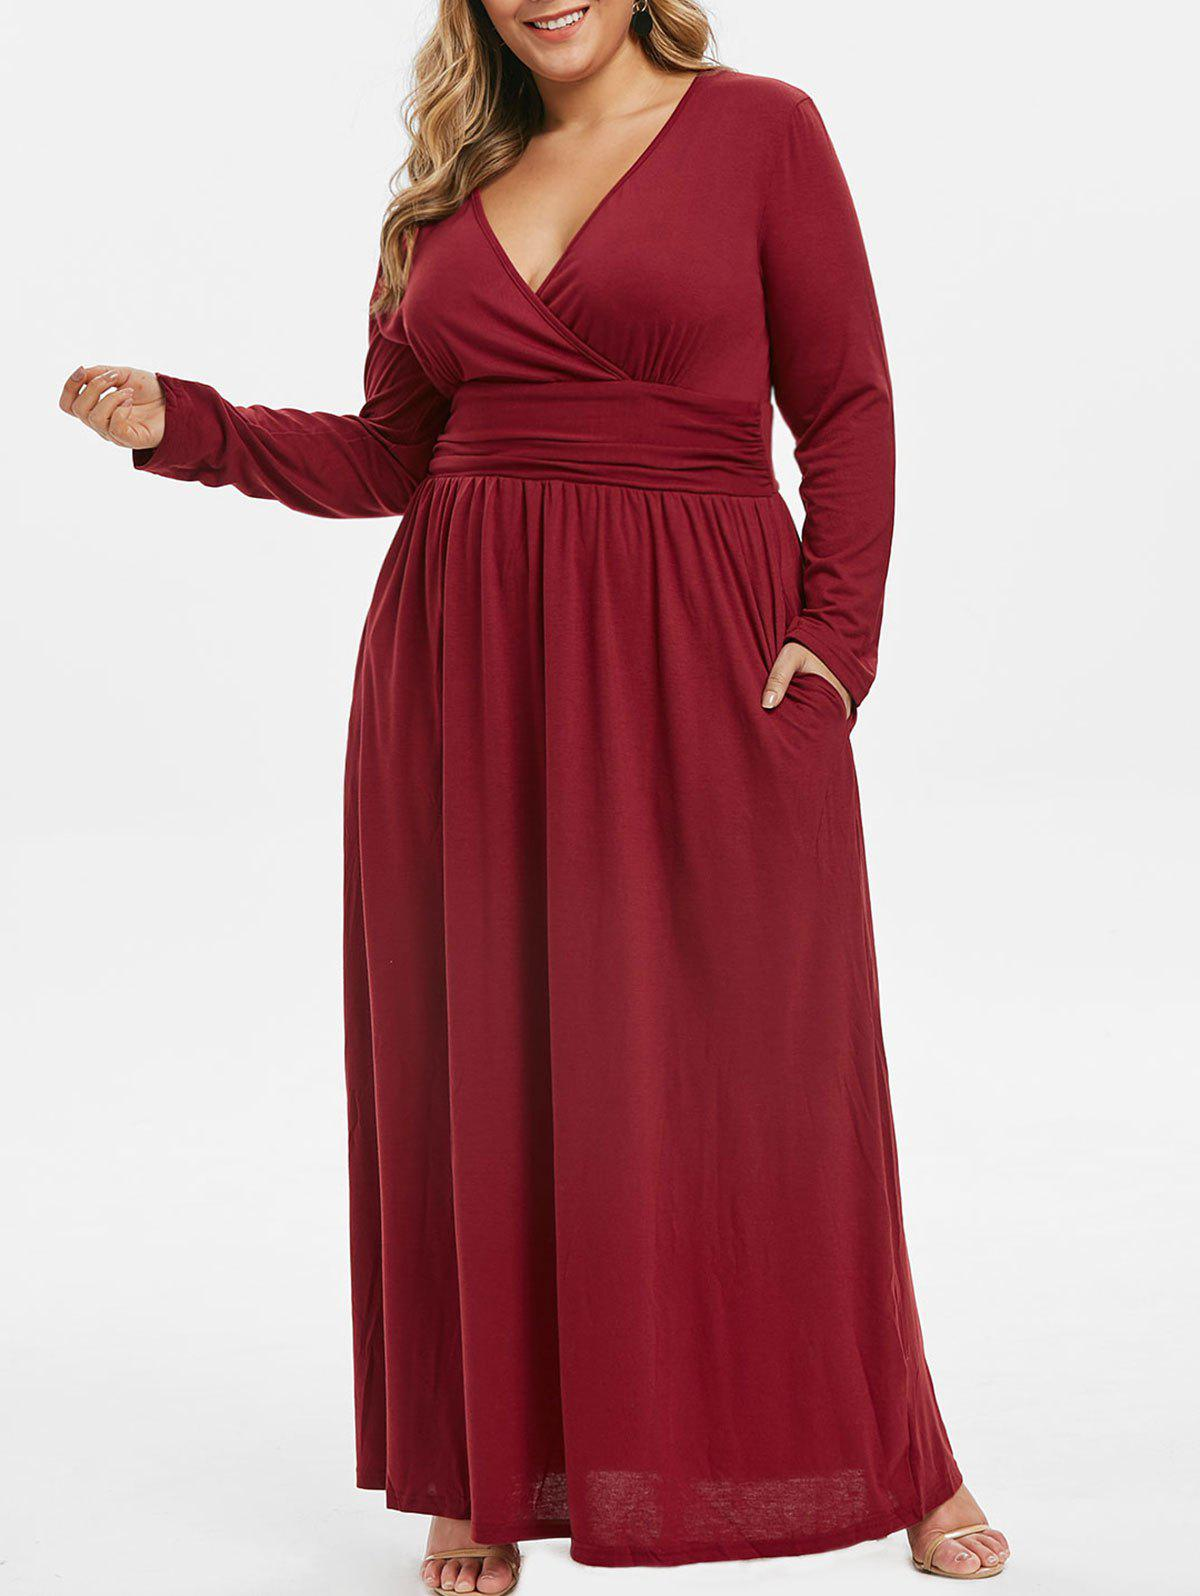 Hot Ruched Seam Pockets Surplice Plus Size Maxi Dress